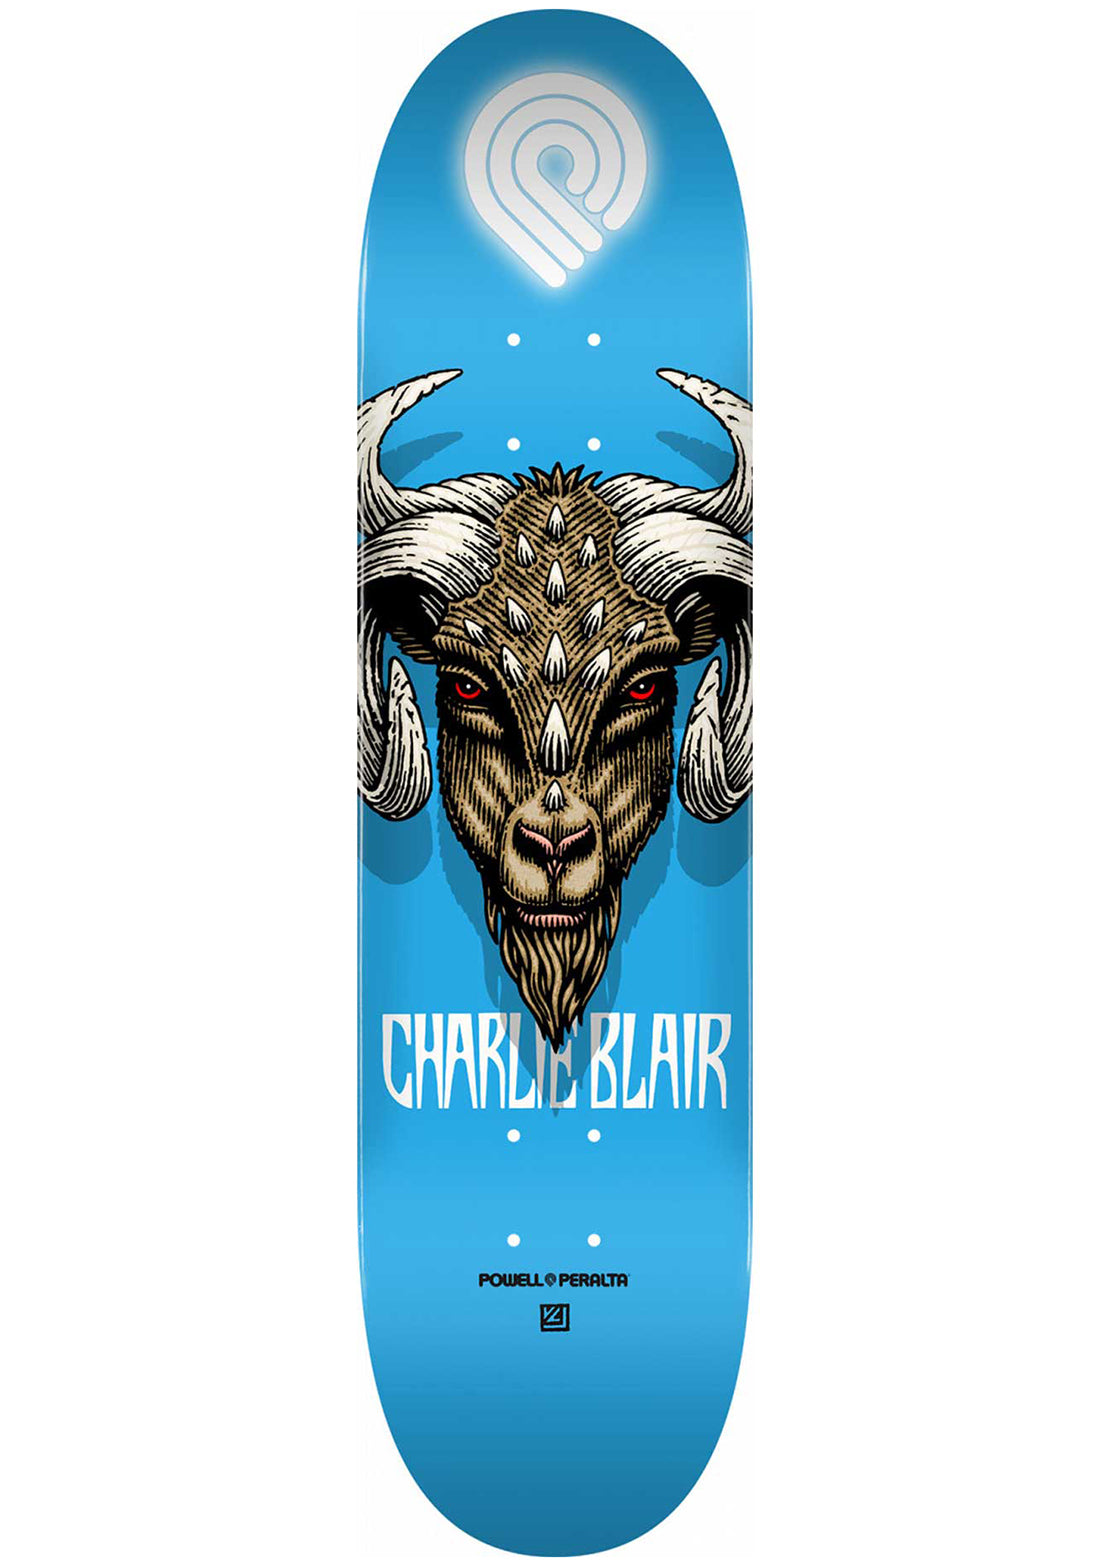 Powell Peralta Blair Goat 2 Skateboard Deck - 8.5""